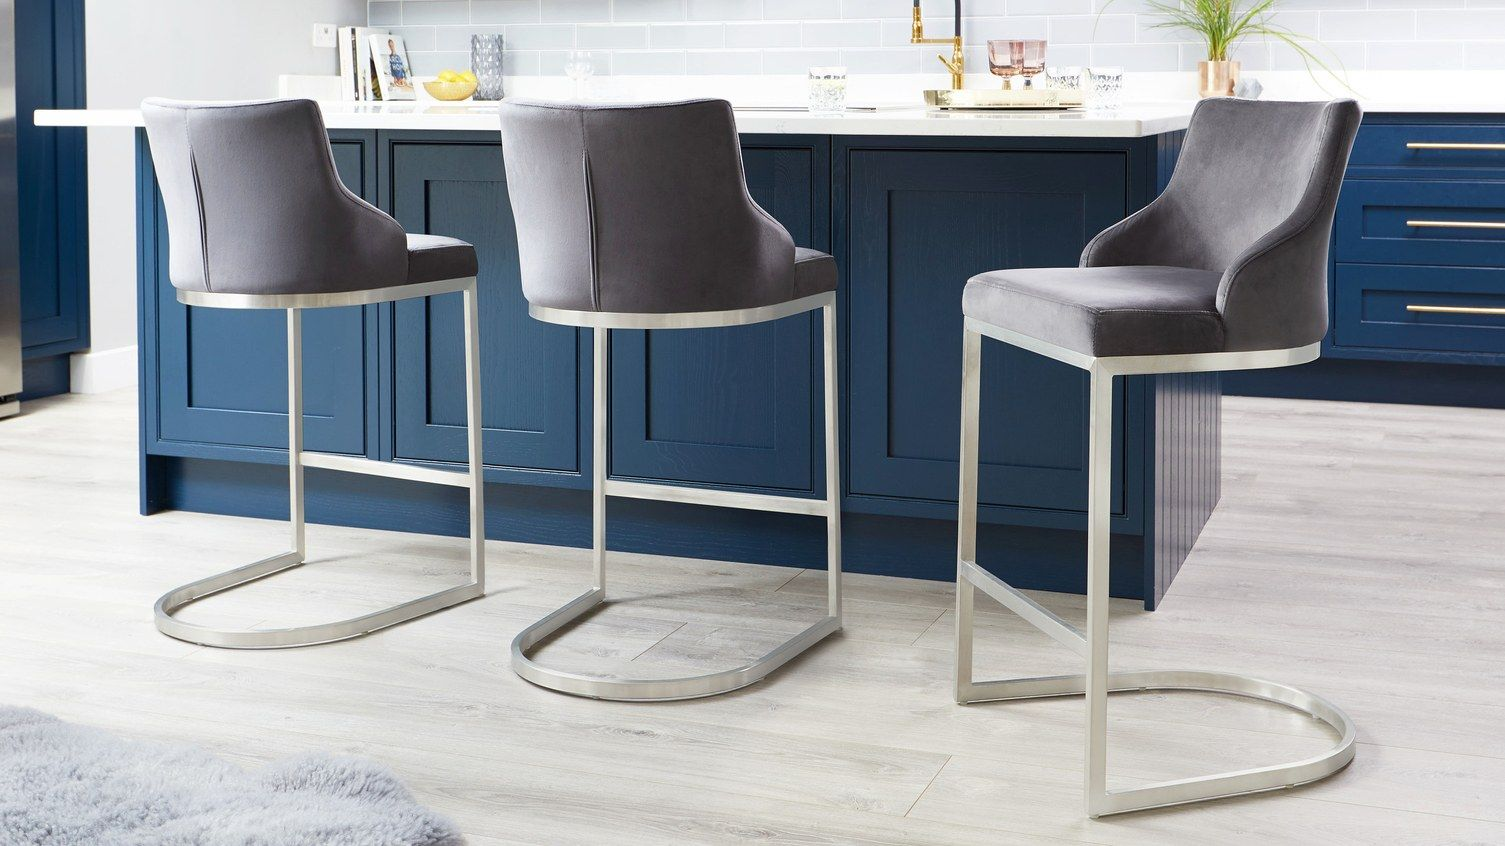 Form Velvet Stainless Steel Bar Stool With Backrest Uk Modern